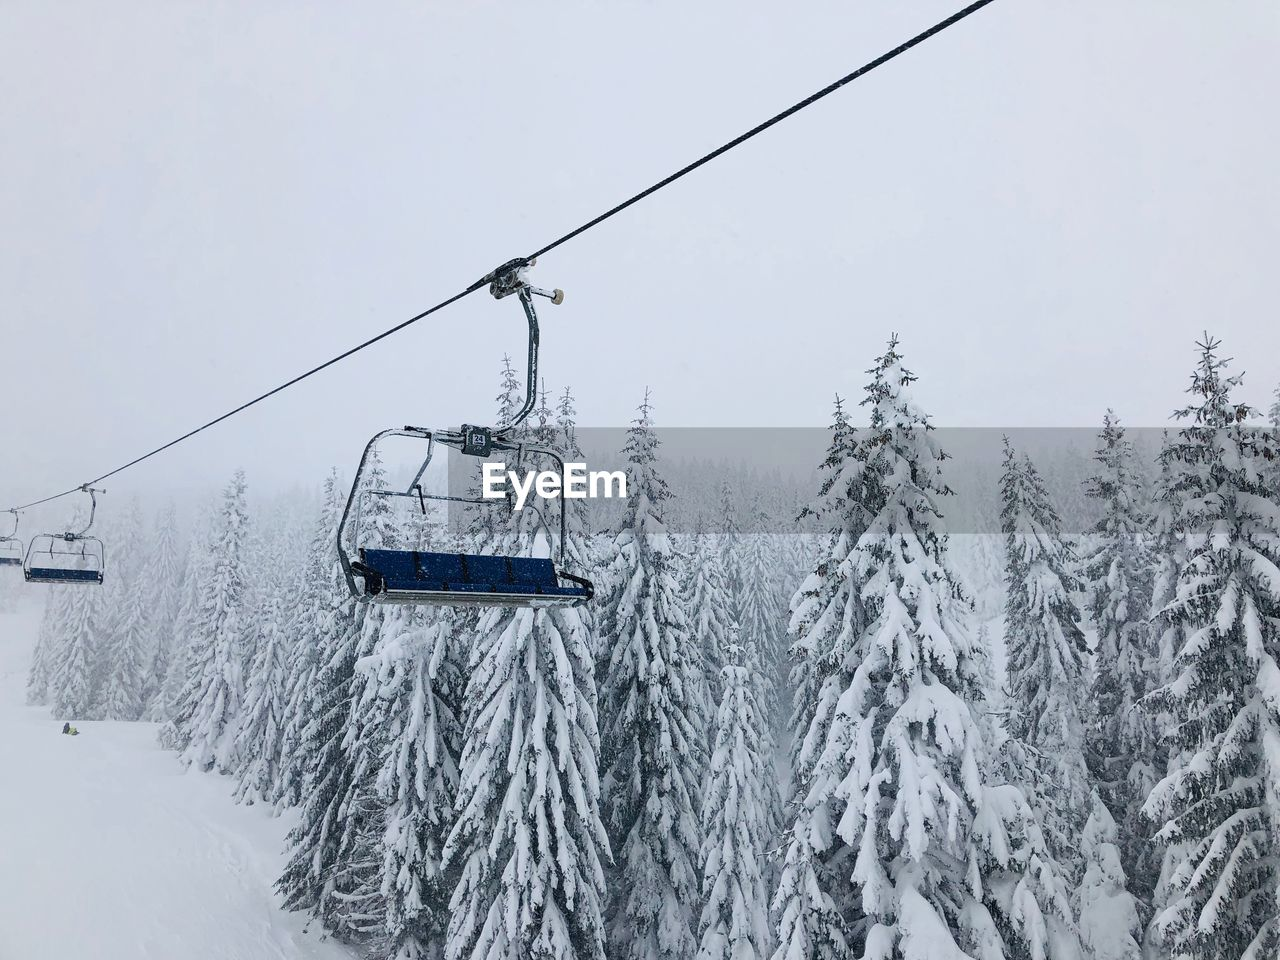 snow, winter, cold temperature, cable car, tree, overhead cable car, ski lift, plant, nature, cable, beauty in nature, covering, mountain, day, no people, scenics - nature, transportation, sky, mode of transportation, outdoors, snowcapped mountain, snowing